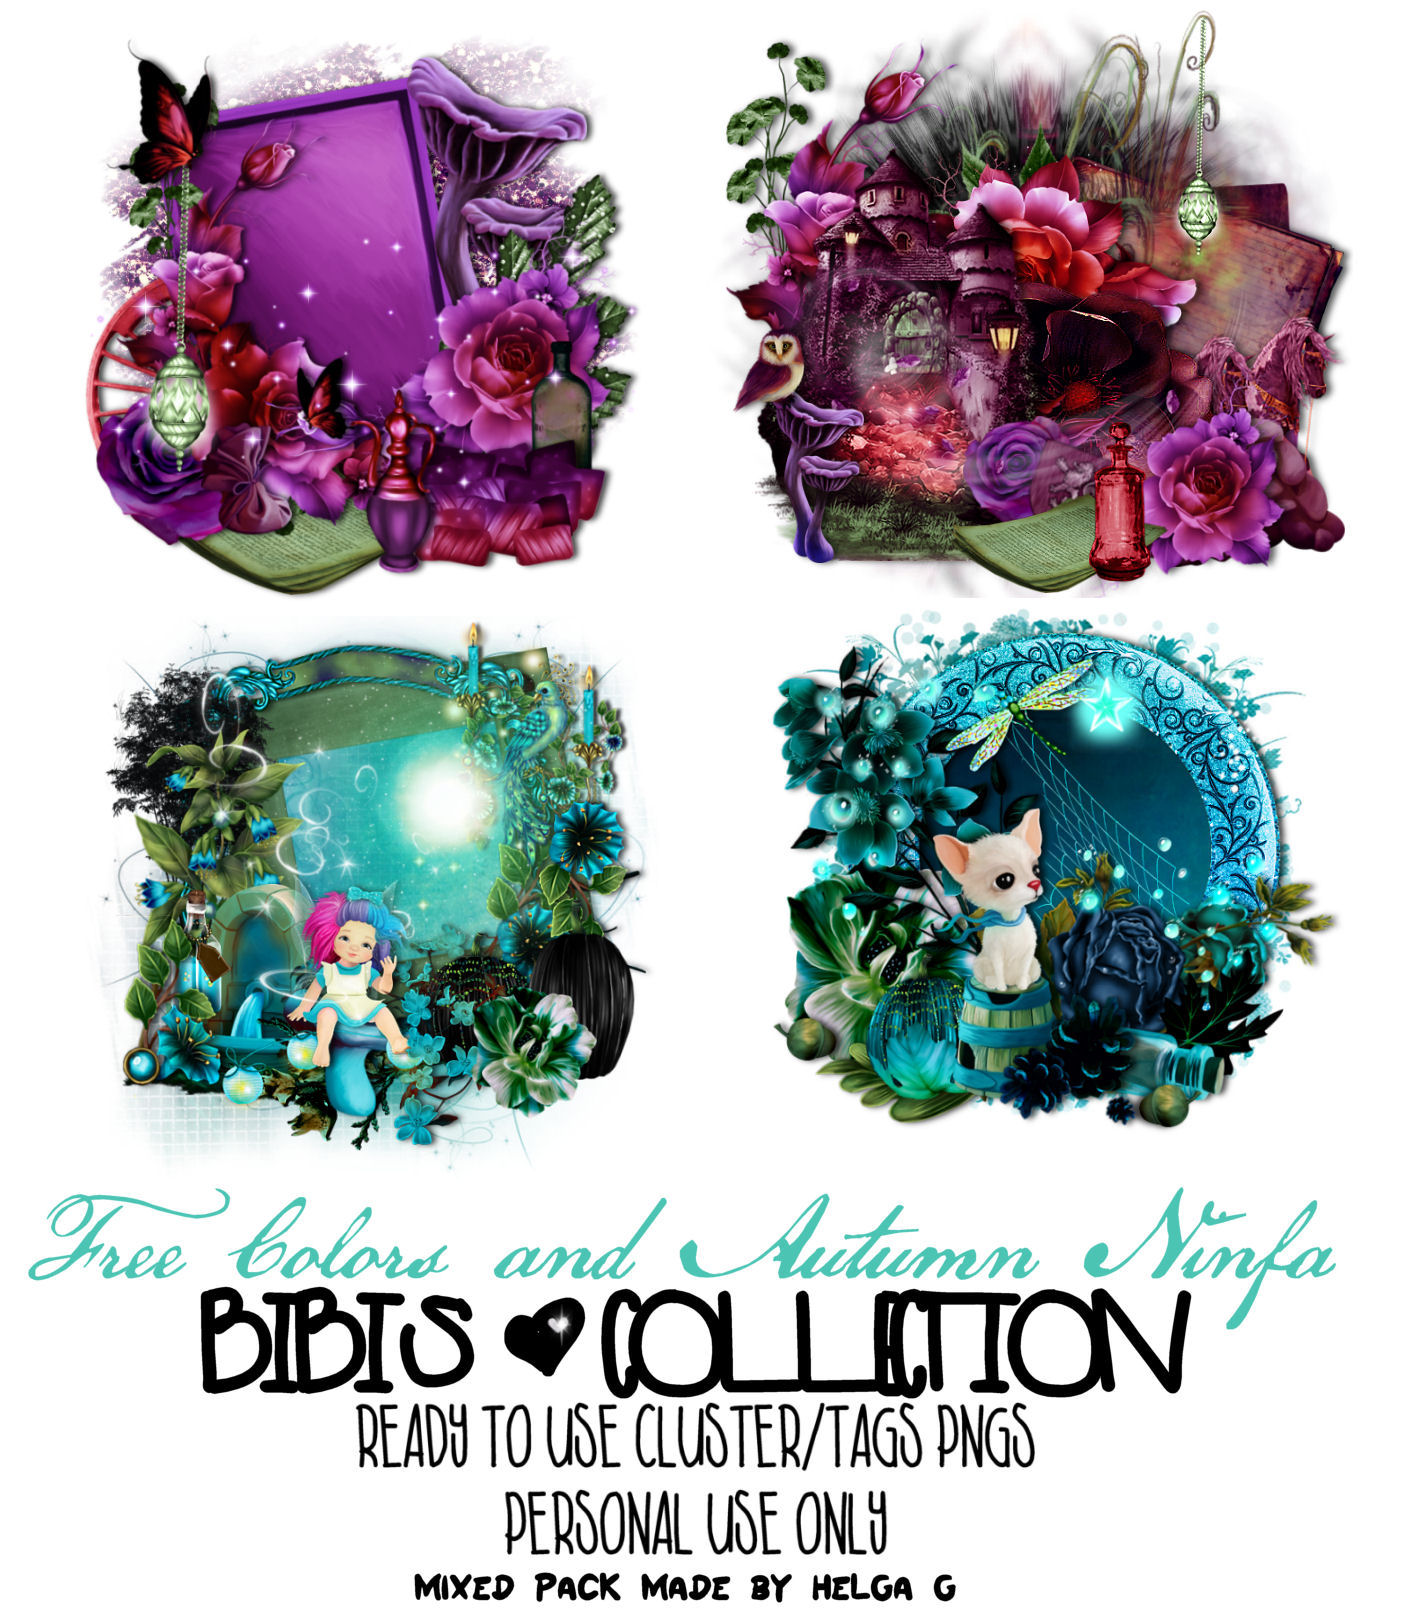 AUTUMN NINFA AND FREE COLORS READY CLUSTER-TAGS PNG